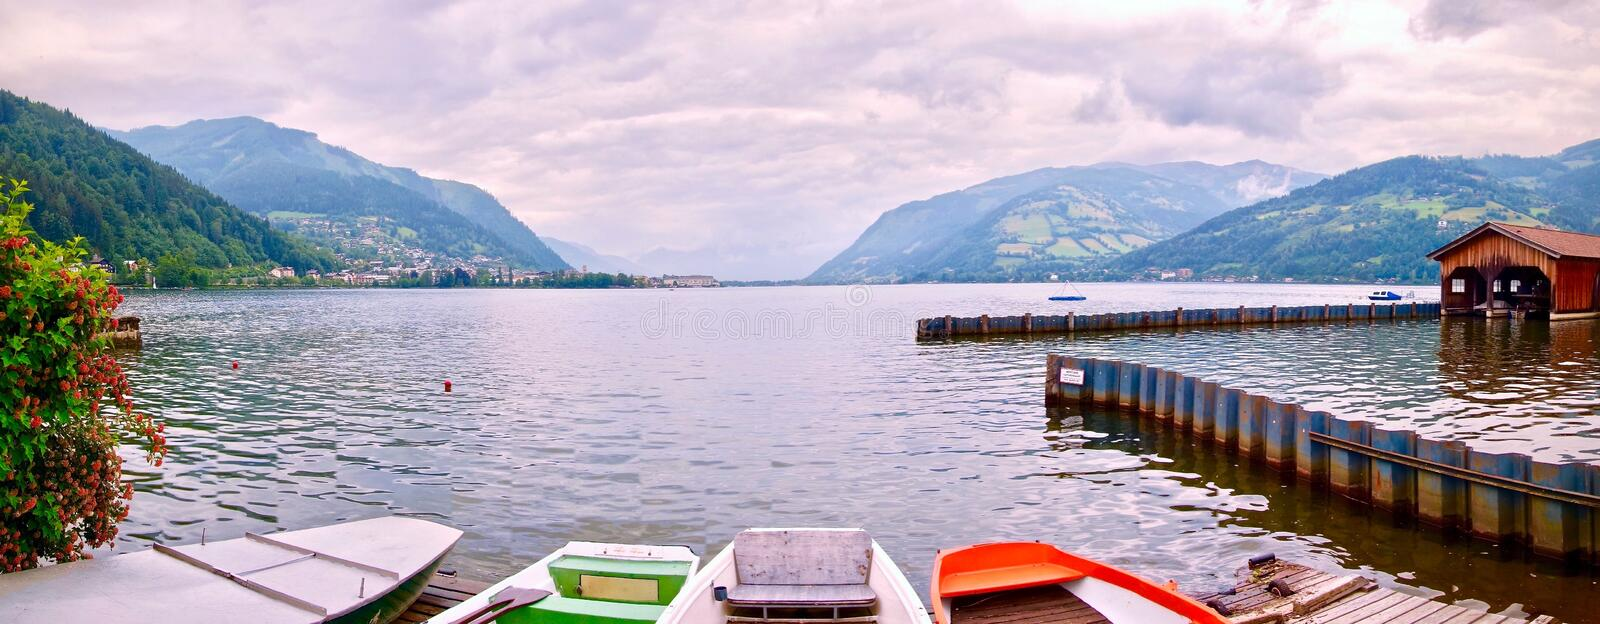 Panorama of Zeller See with canoes in the foreground stock photo